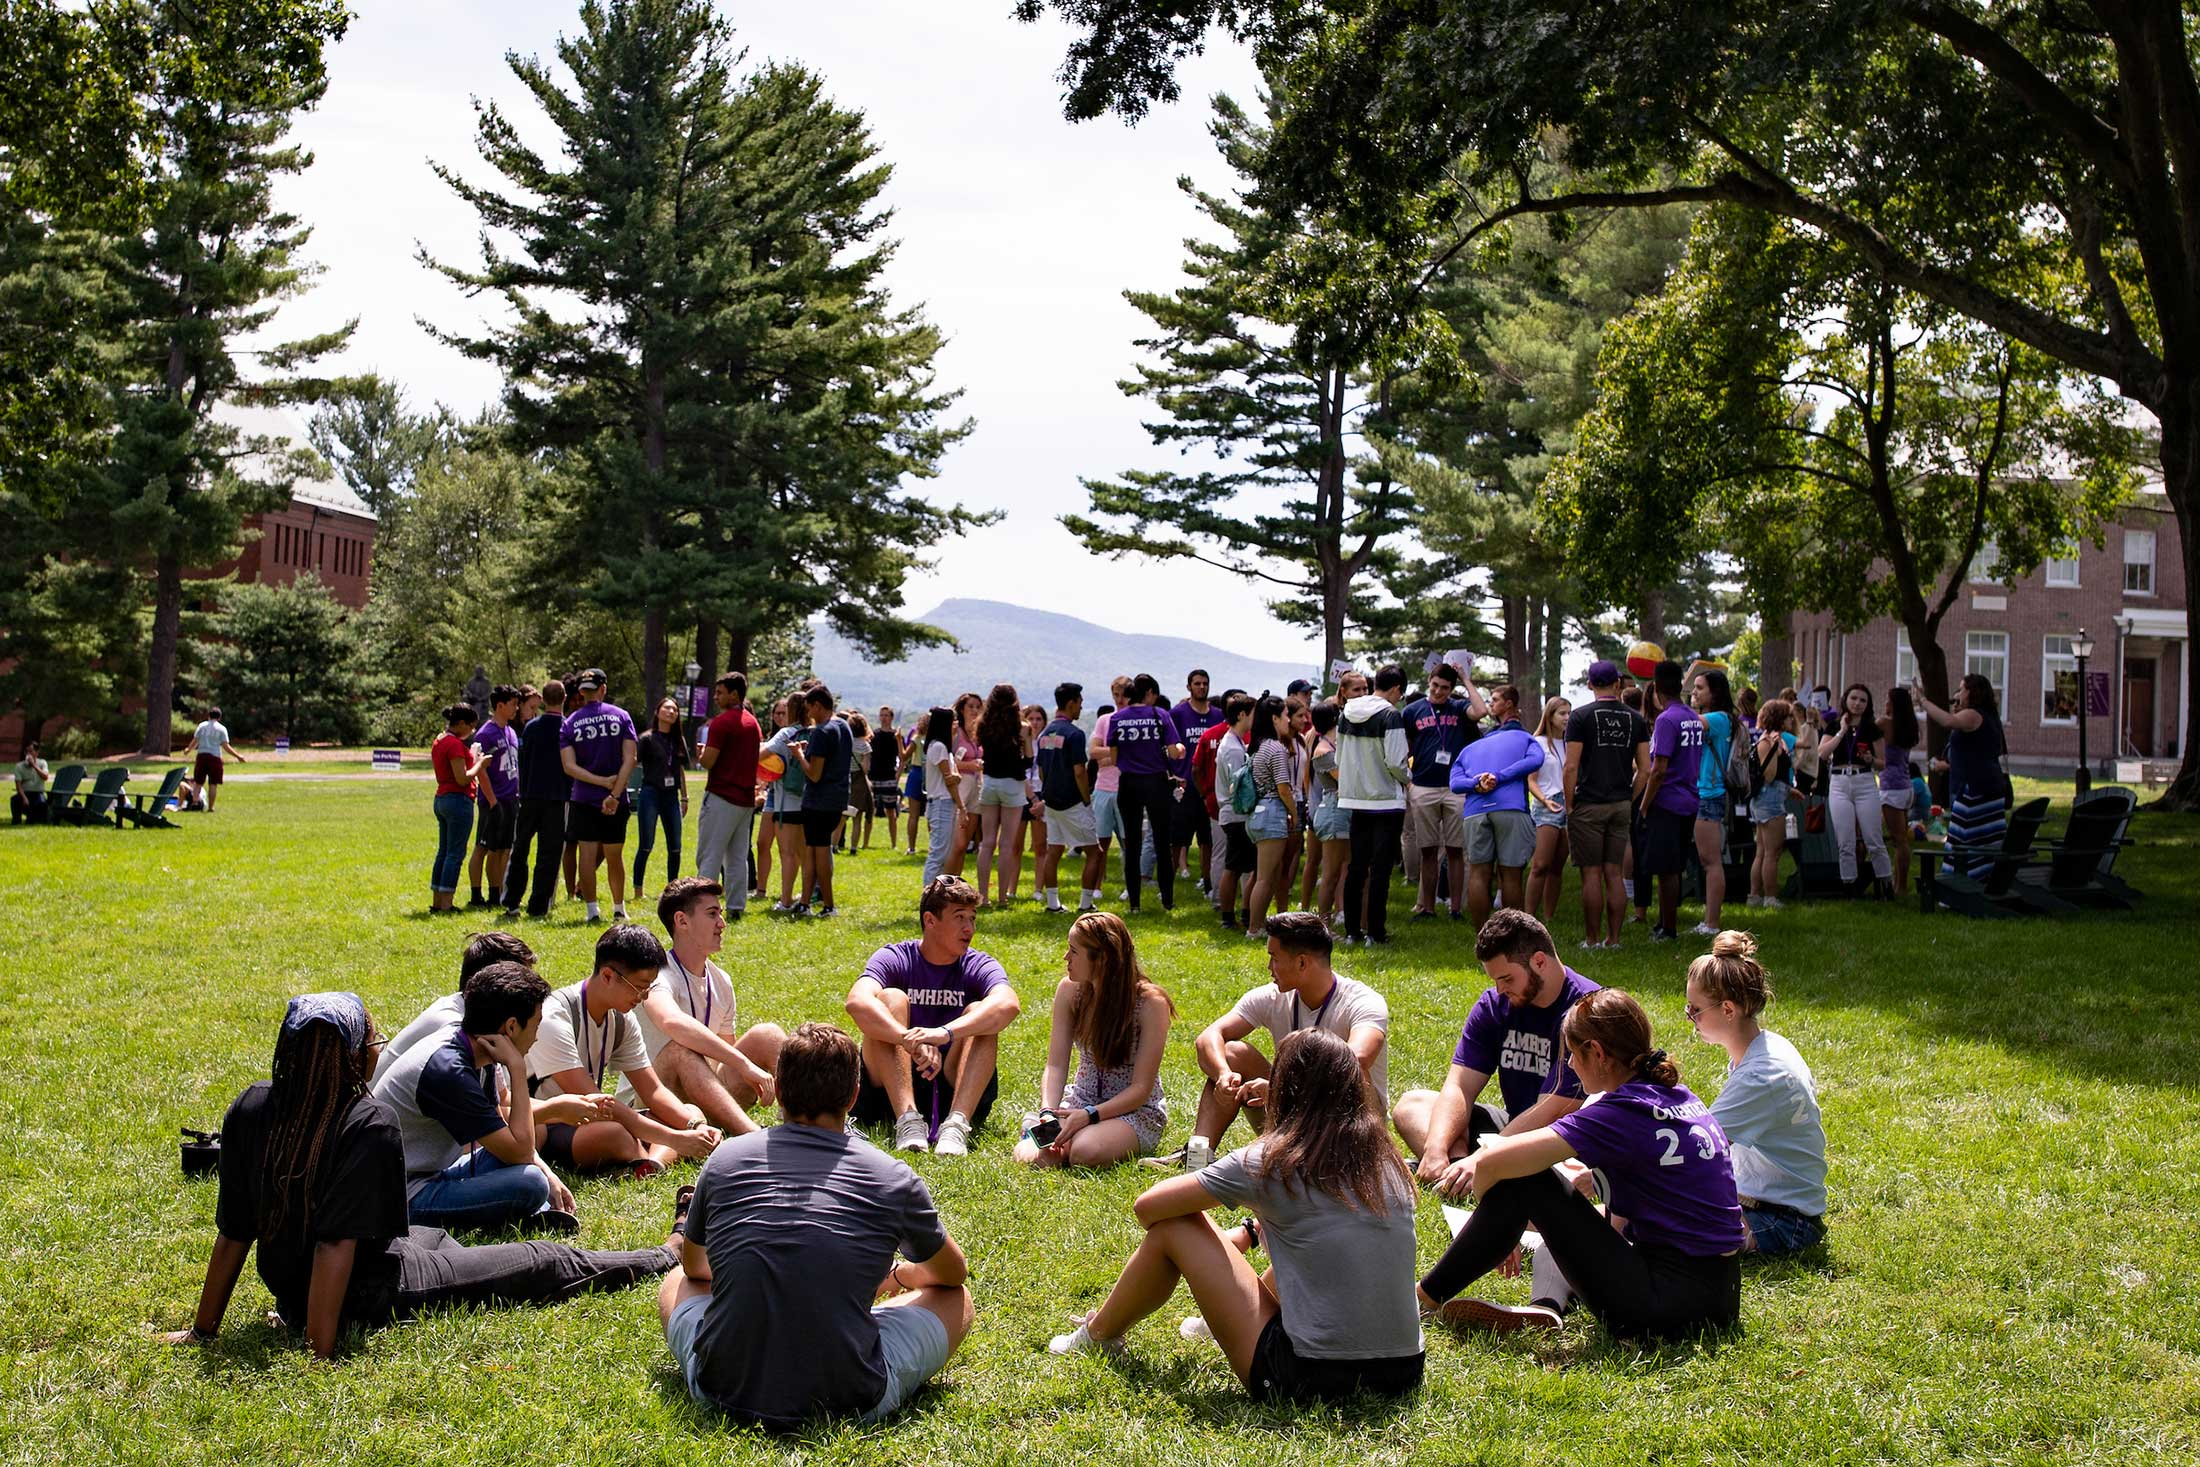 New students break in Squads where they gather in small groups for activities and conversation